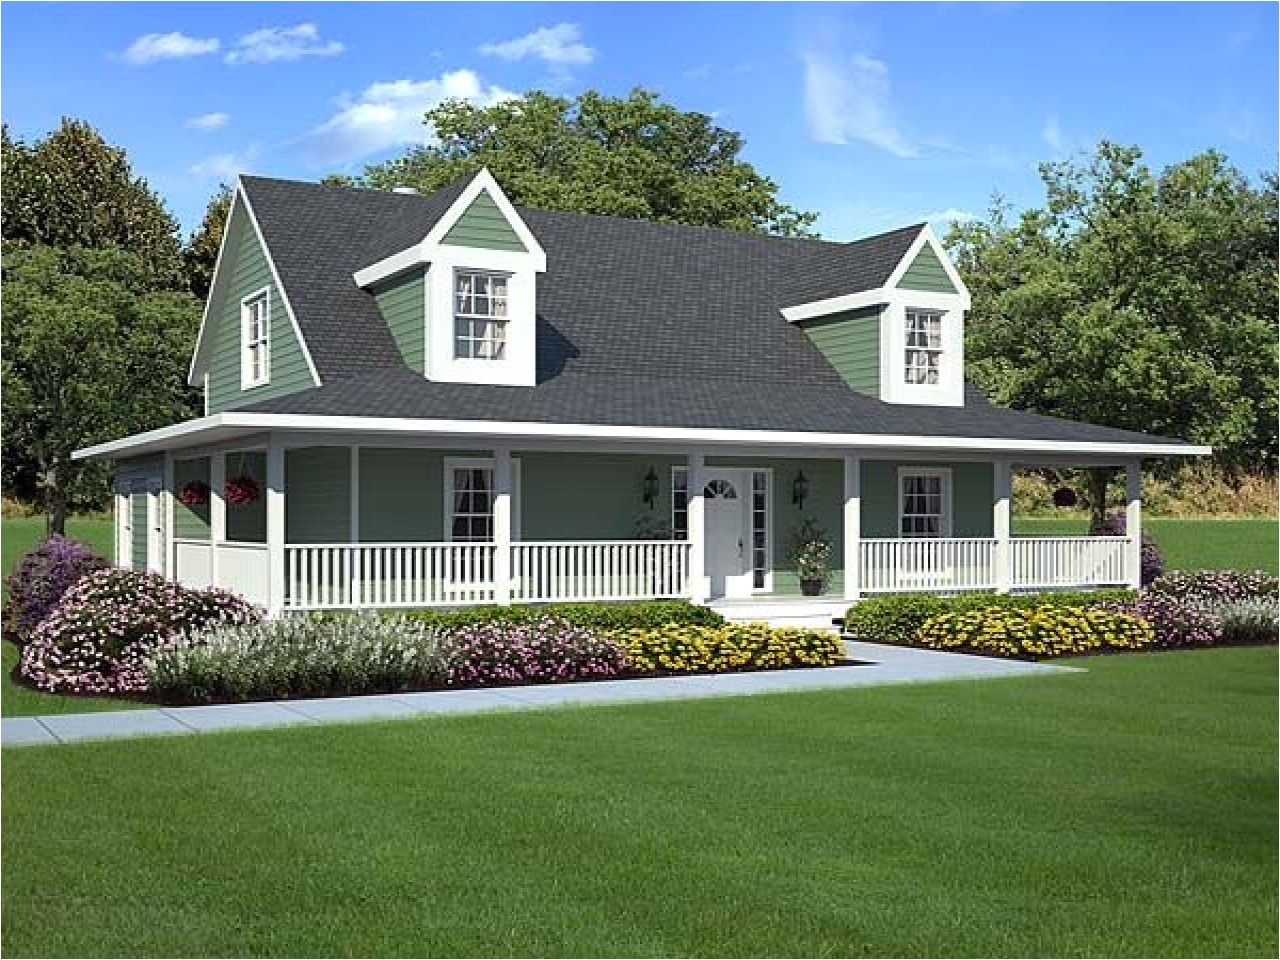 958604827d3a25e3 southern house plans with wrap around porch mediterranean house plans